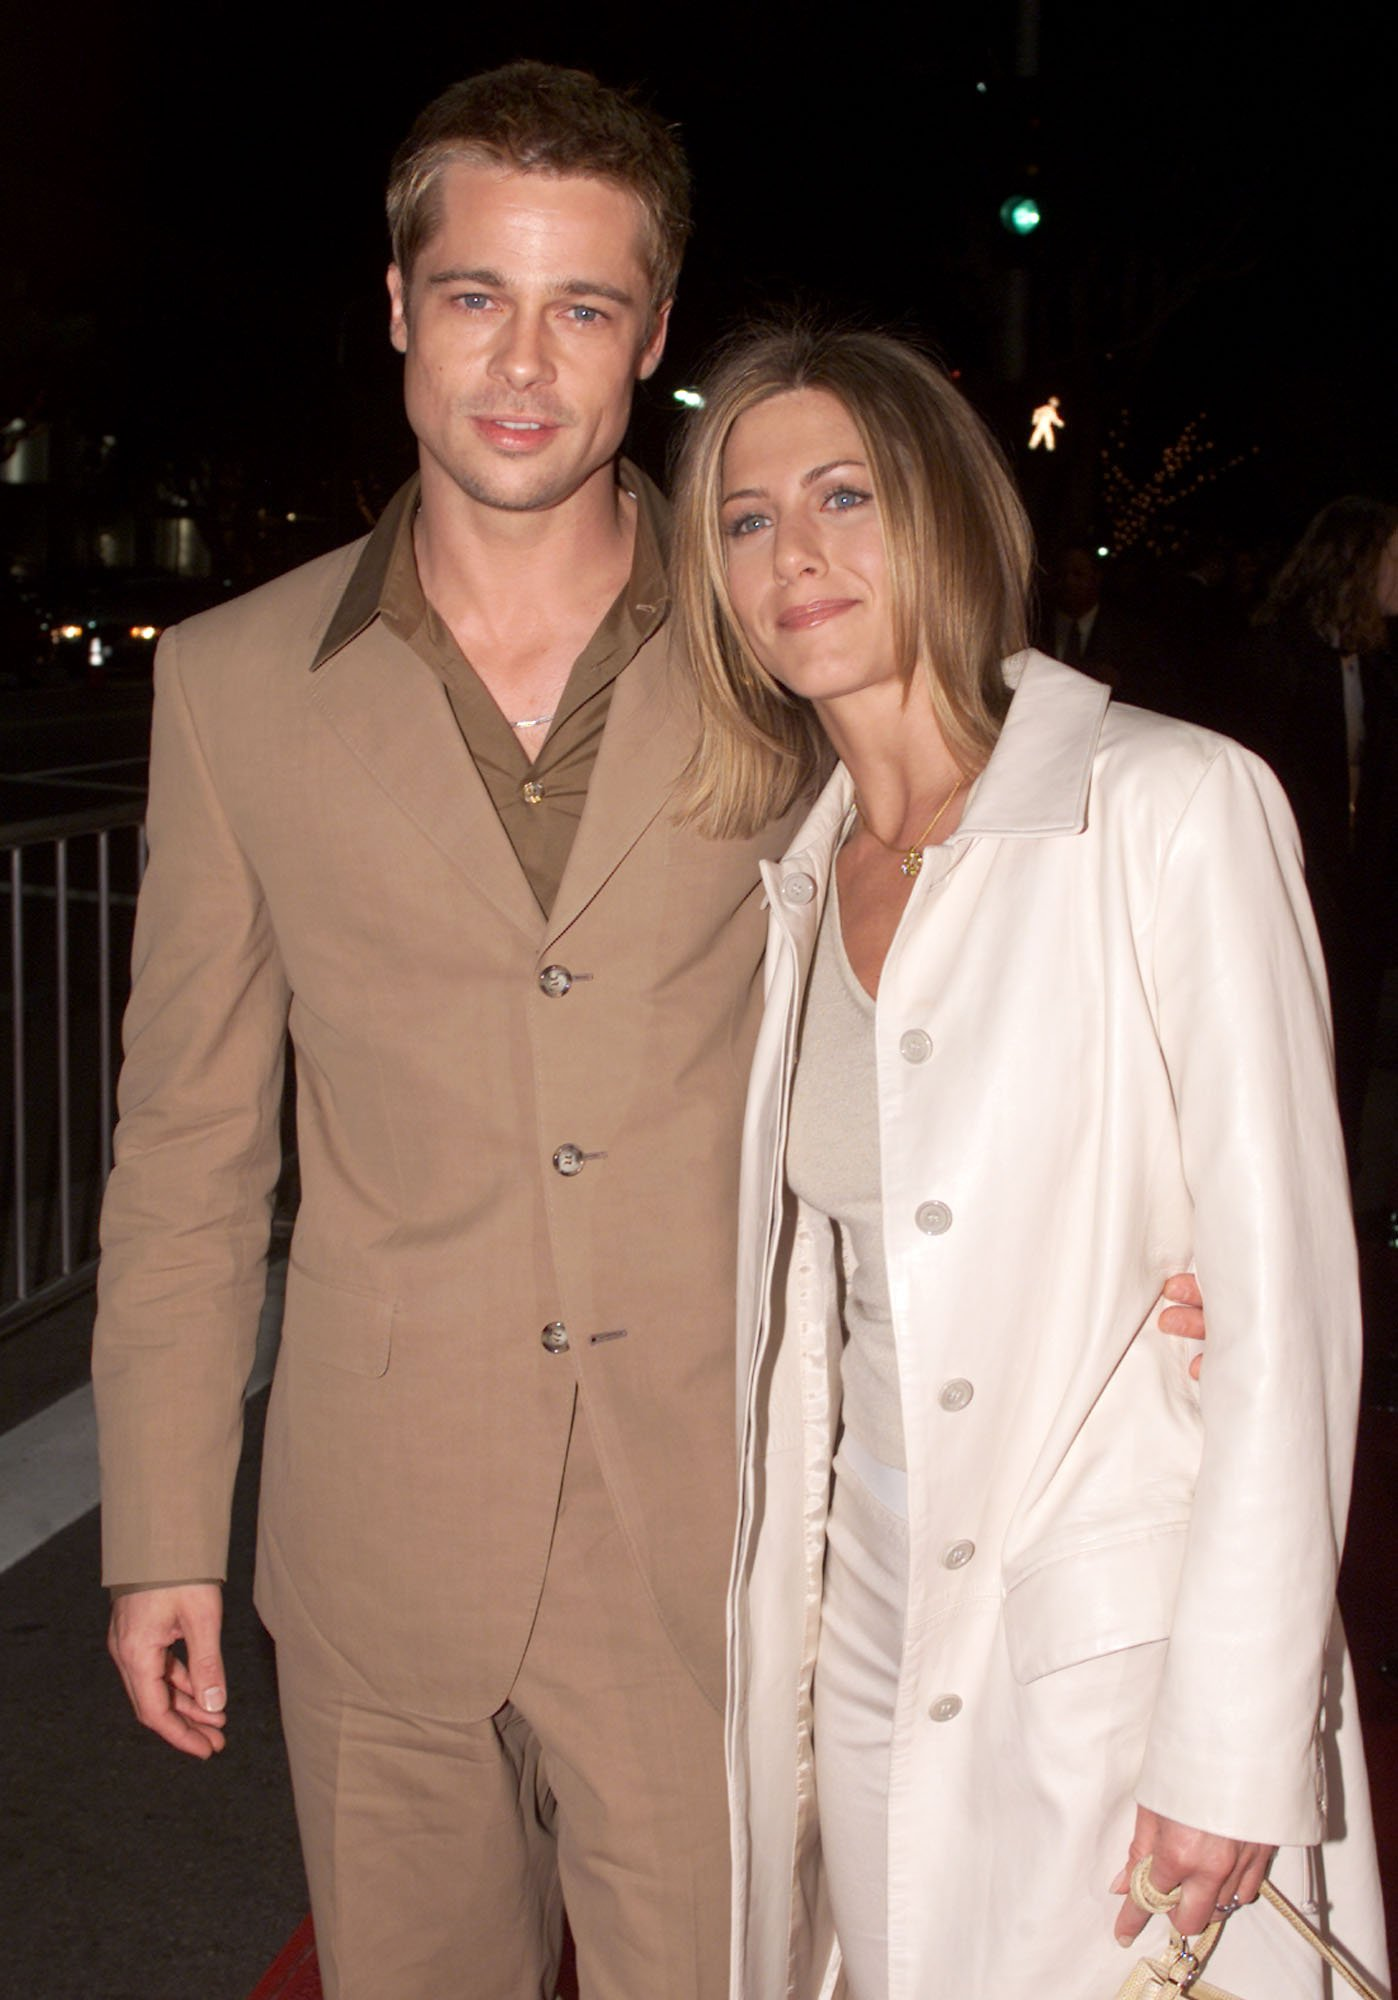 Image Credits: Getty Images / Kevin Winter | Brad Pitt and Jennifer Aniston at the premiere of 'The Mexican' at the National Theater in Los Angeles, Ca. 2/23/01.